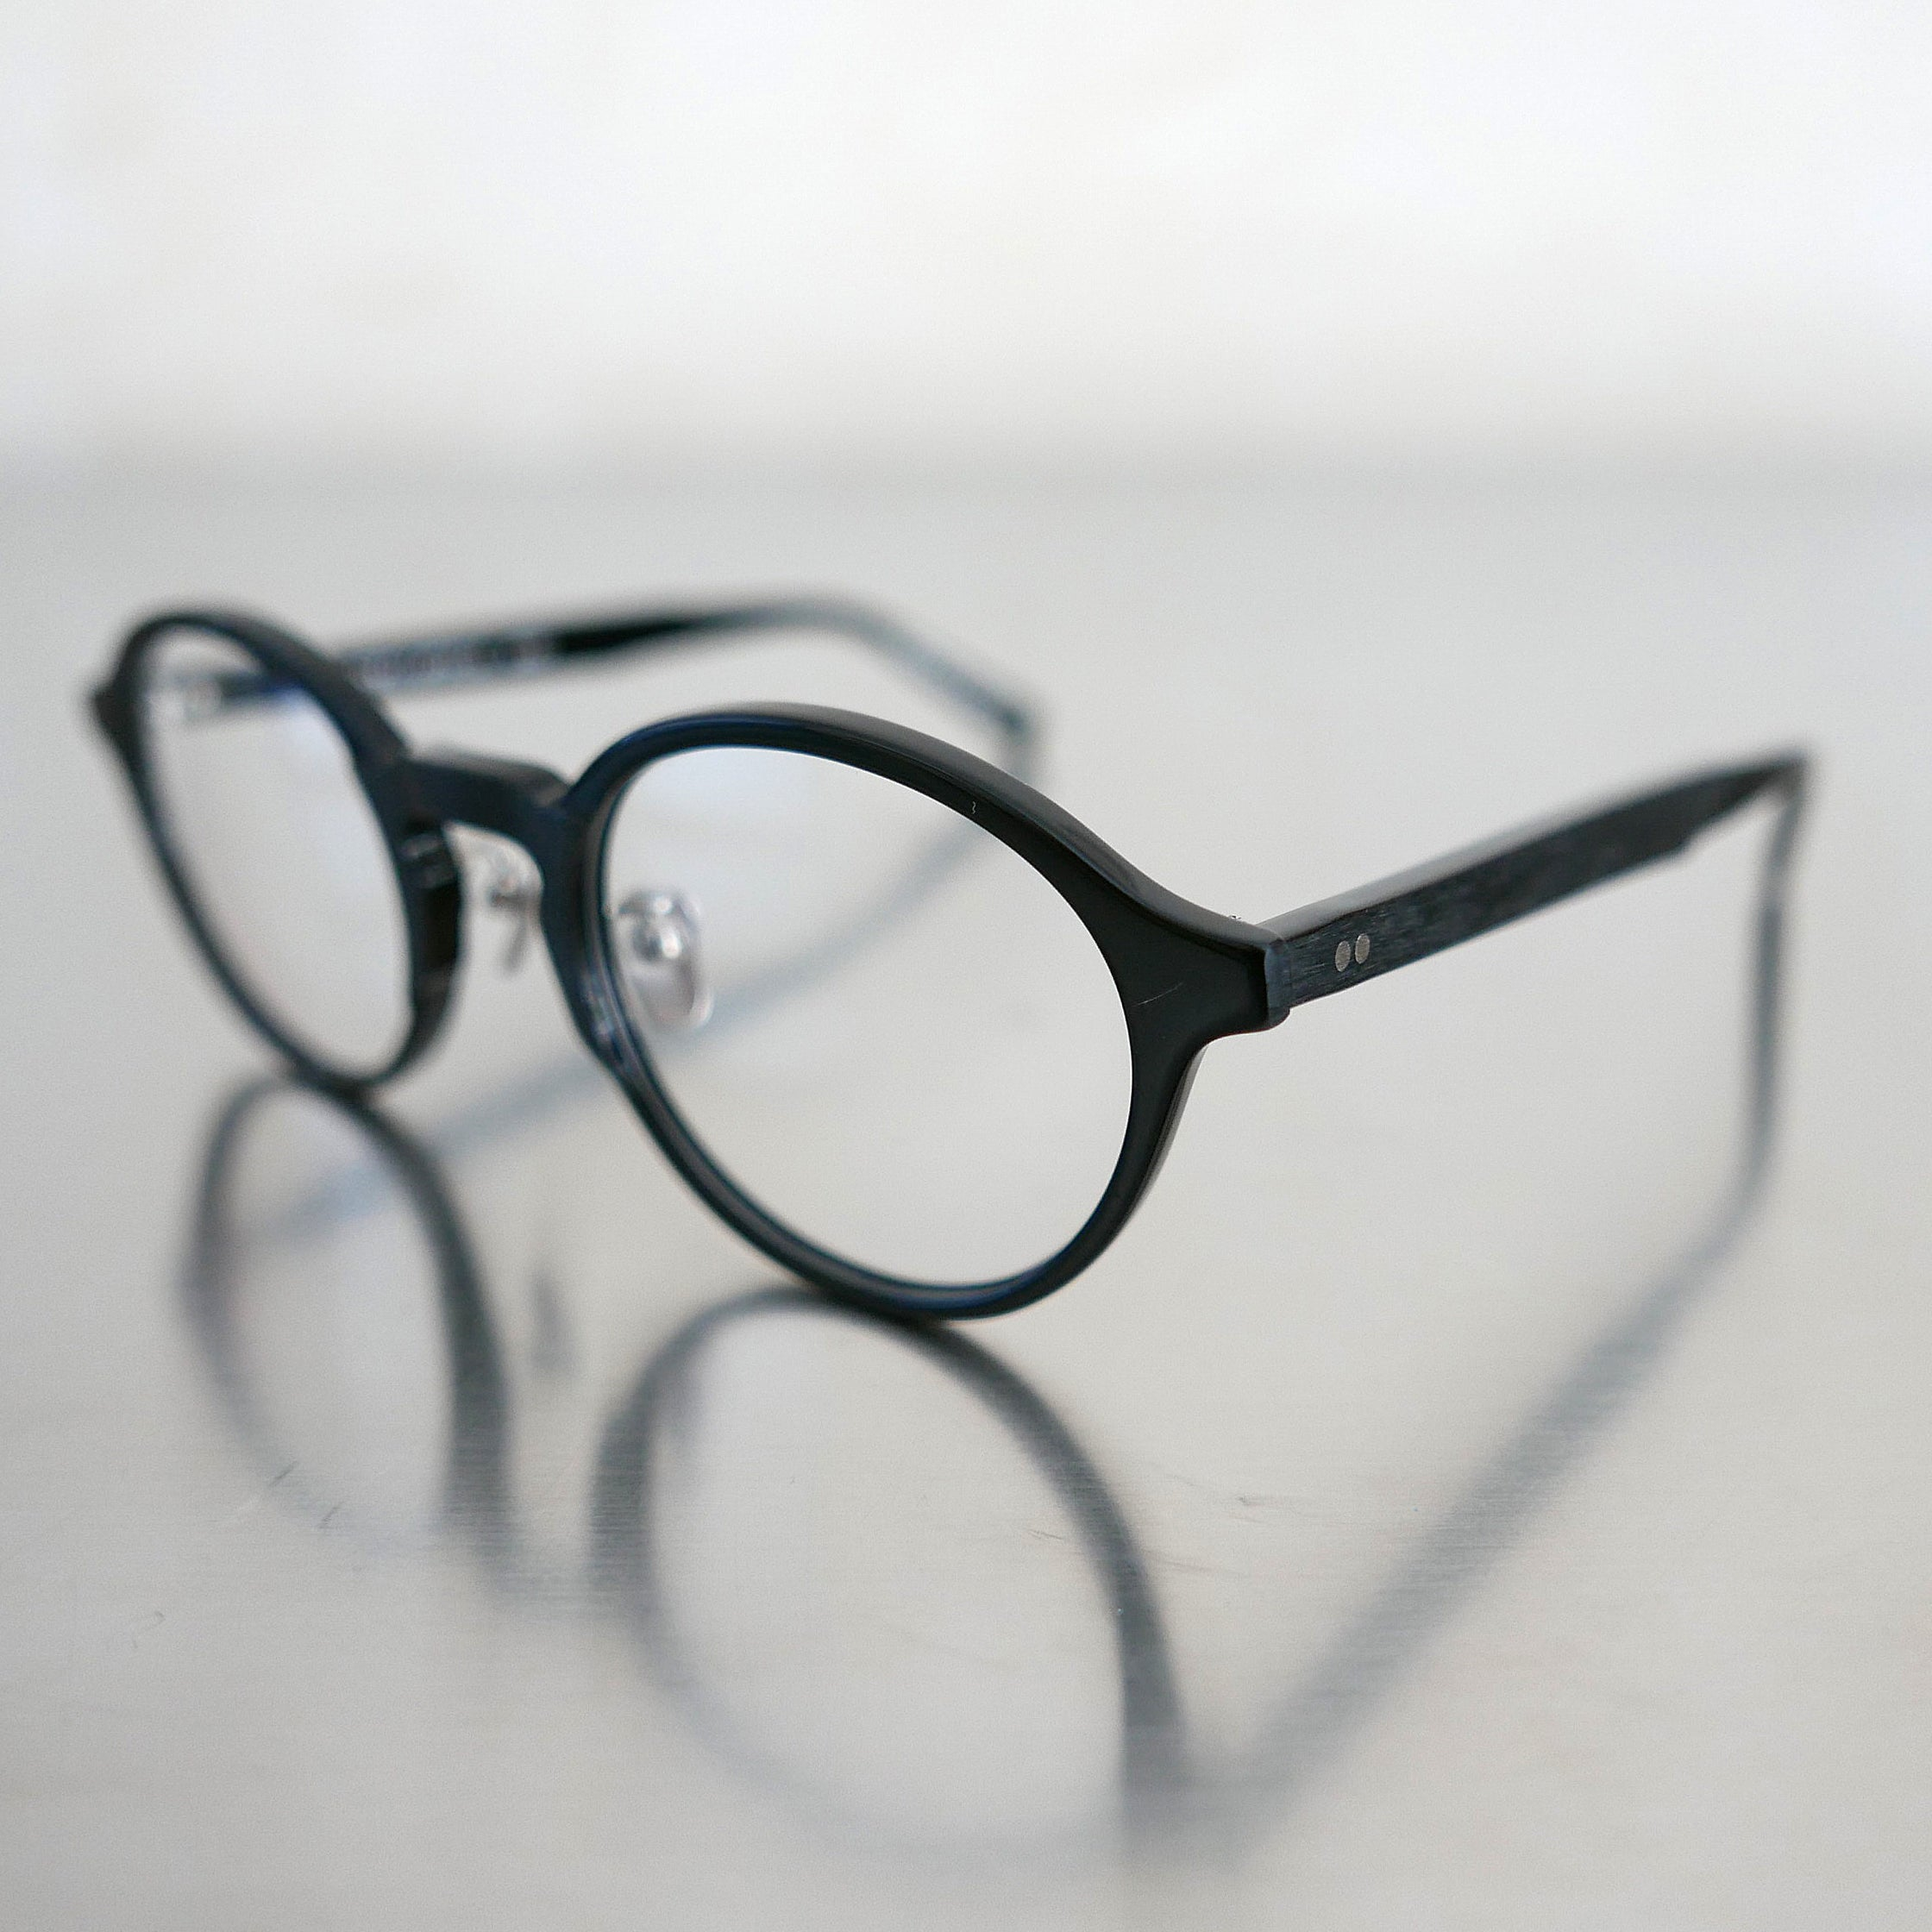 KJ-08 in Black  - Biodegradable Cellulose Acetate and Titanium